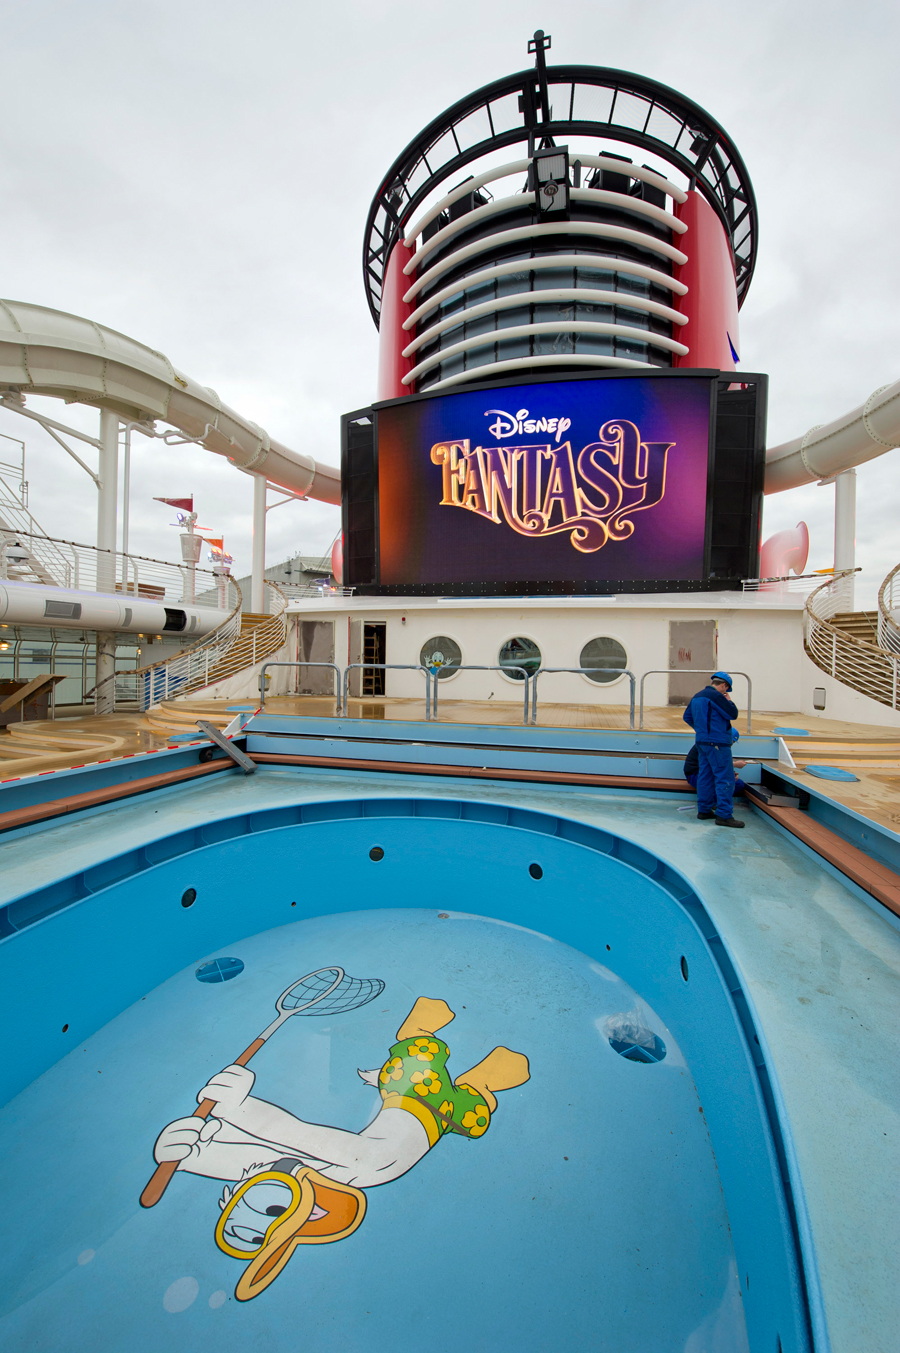 A First Look At The Disney Fantasy After Float Out